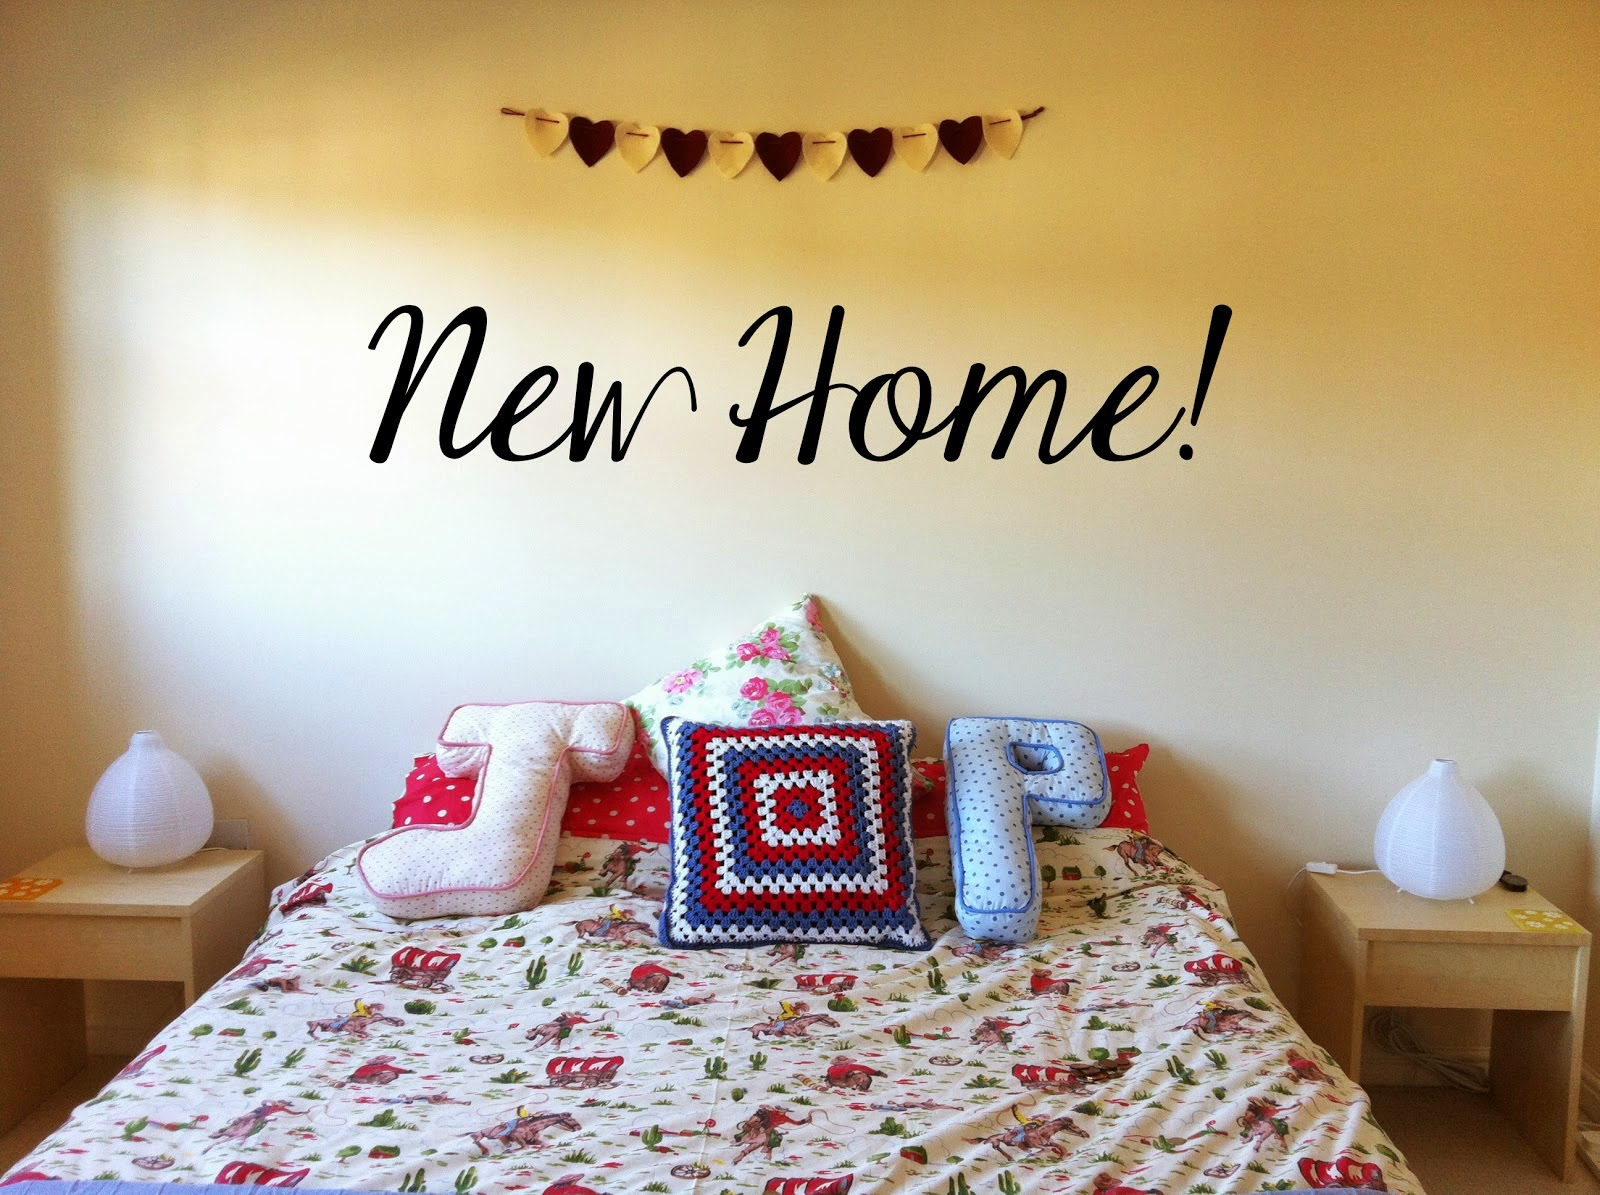 Welcome to New Home